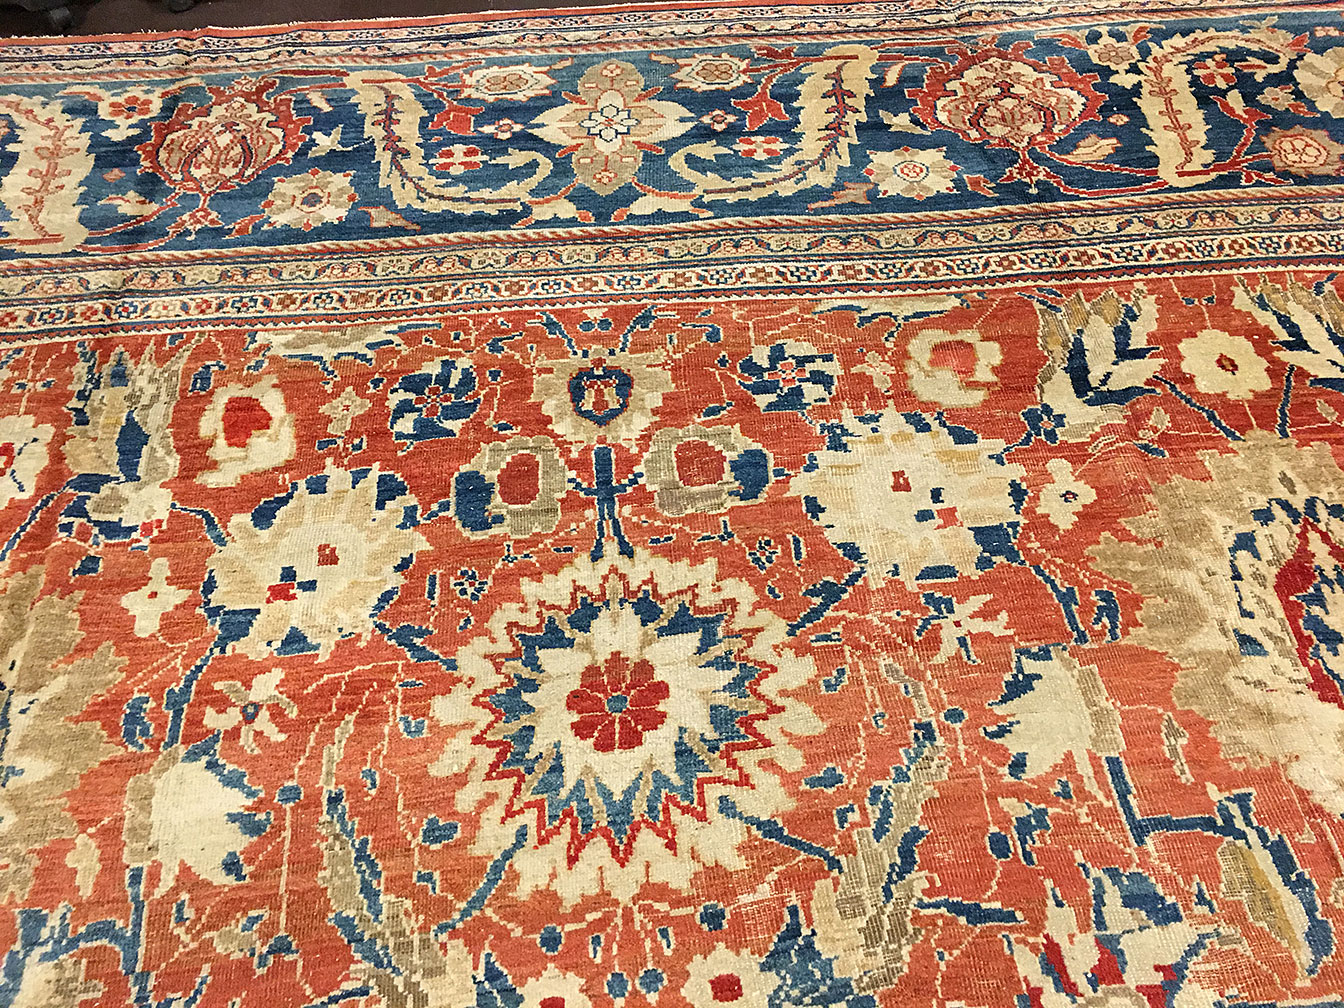 Antique sultan abad Carpet - # 9273